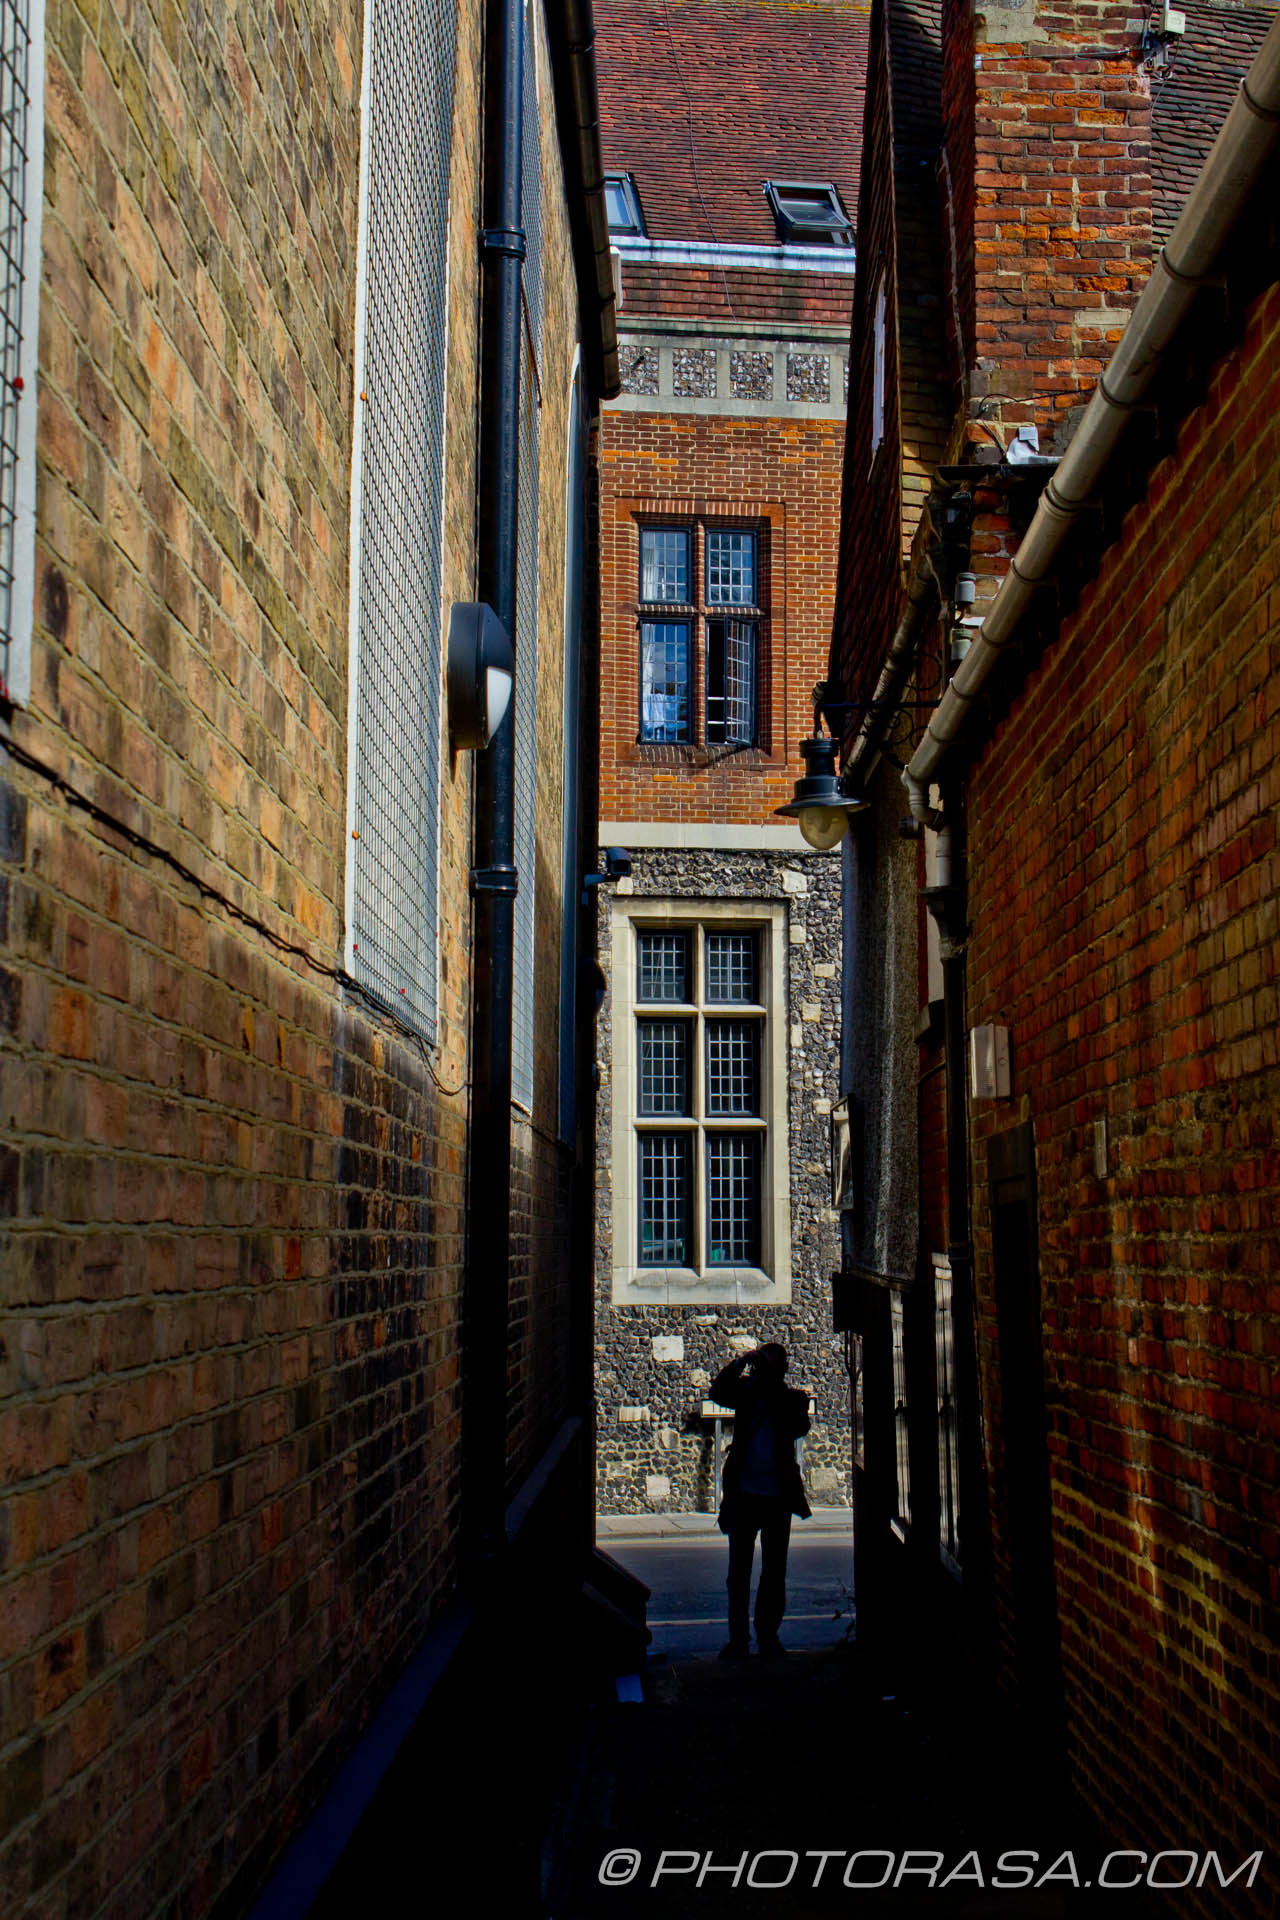 http://photorasa.com/canterbury-trip/photographer-in-the-alley/